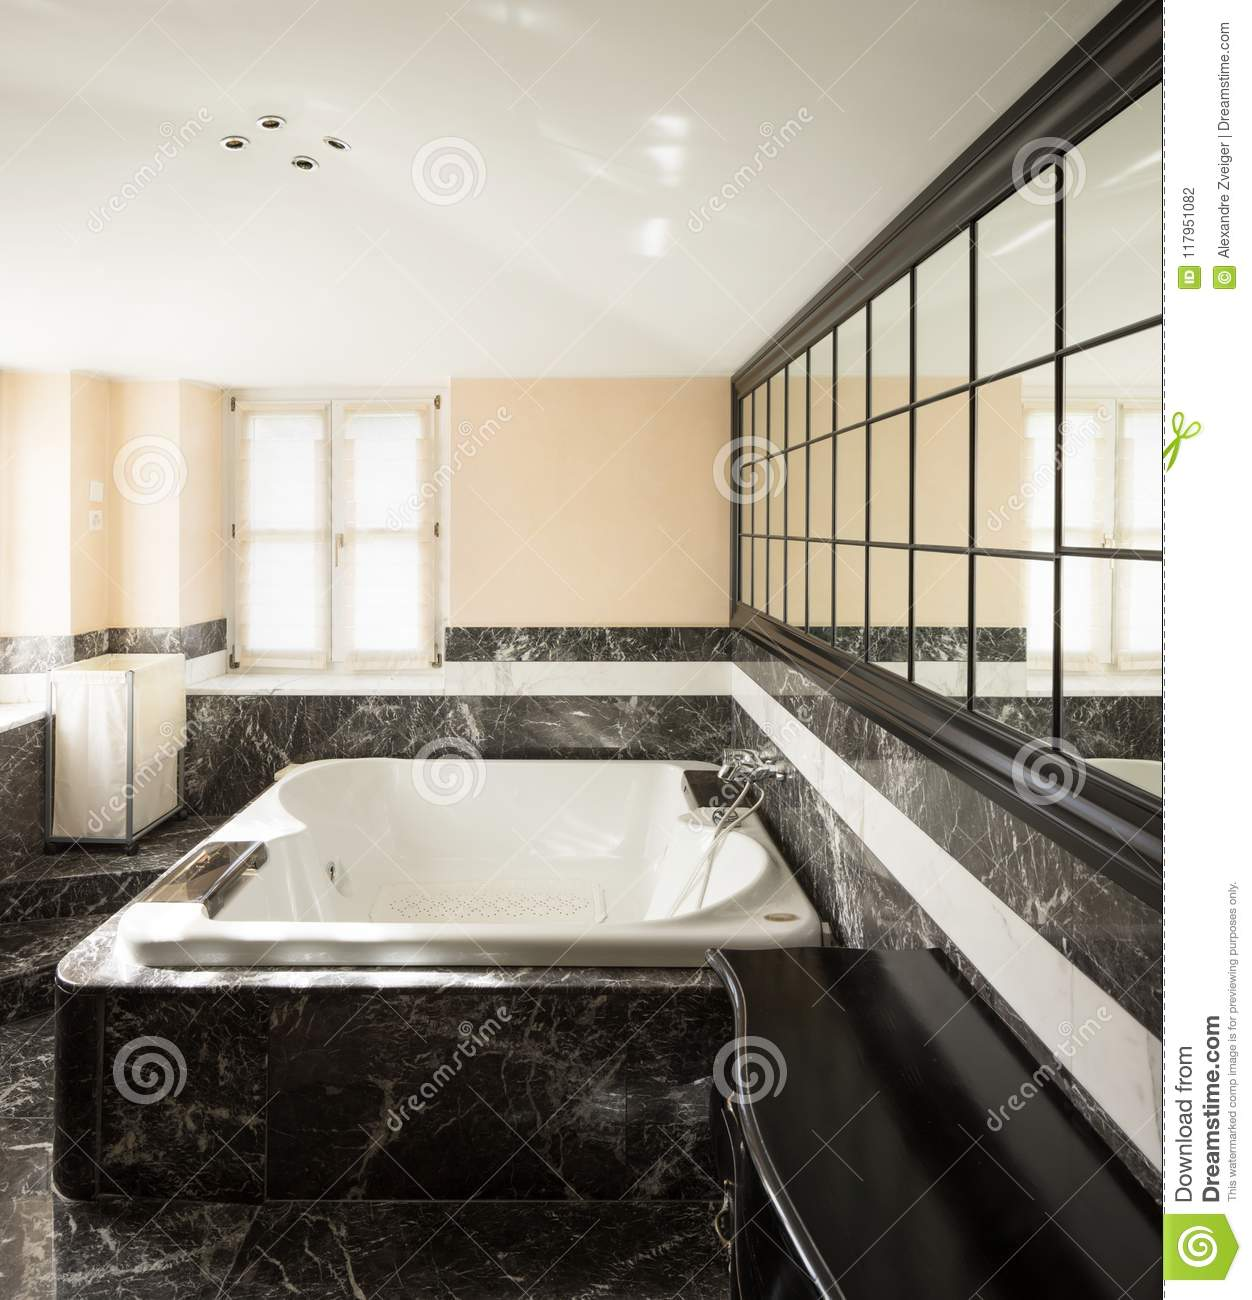 Bathroom With Black Marble Tiles And Empty Big Bathtub Stock Photo